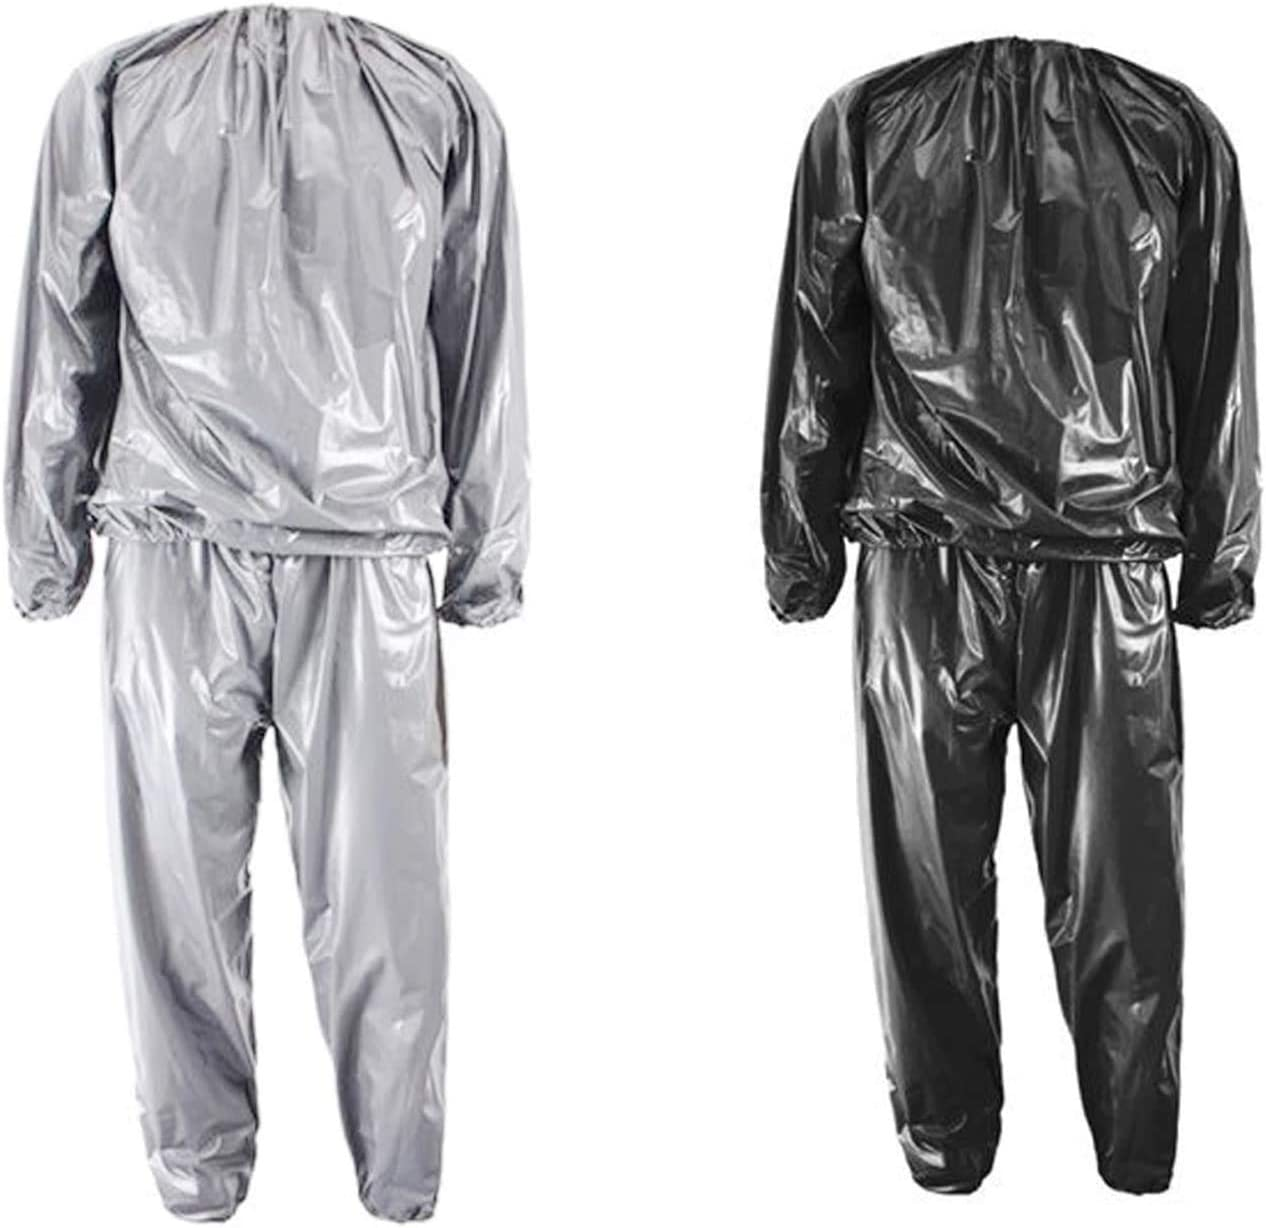 XINSHUN Sweat Sauna Suits Weight Loss Gym Exercise for Men and Women : Sports & Outdoors